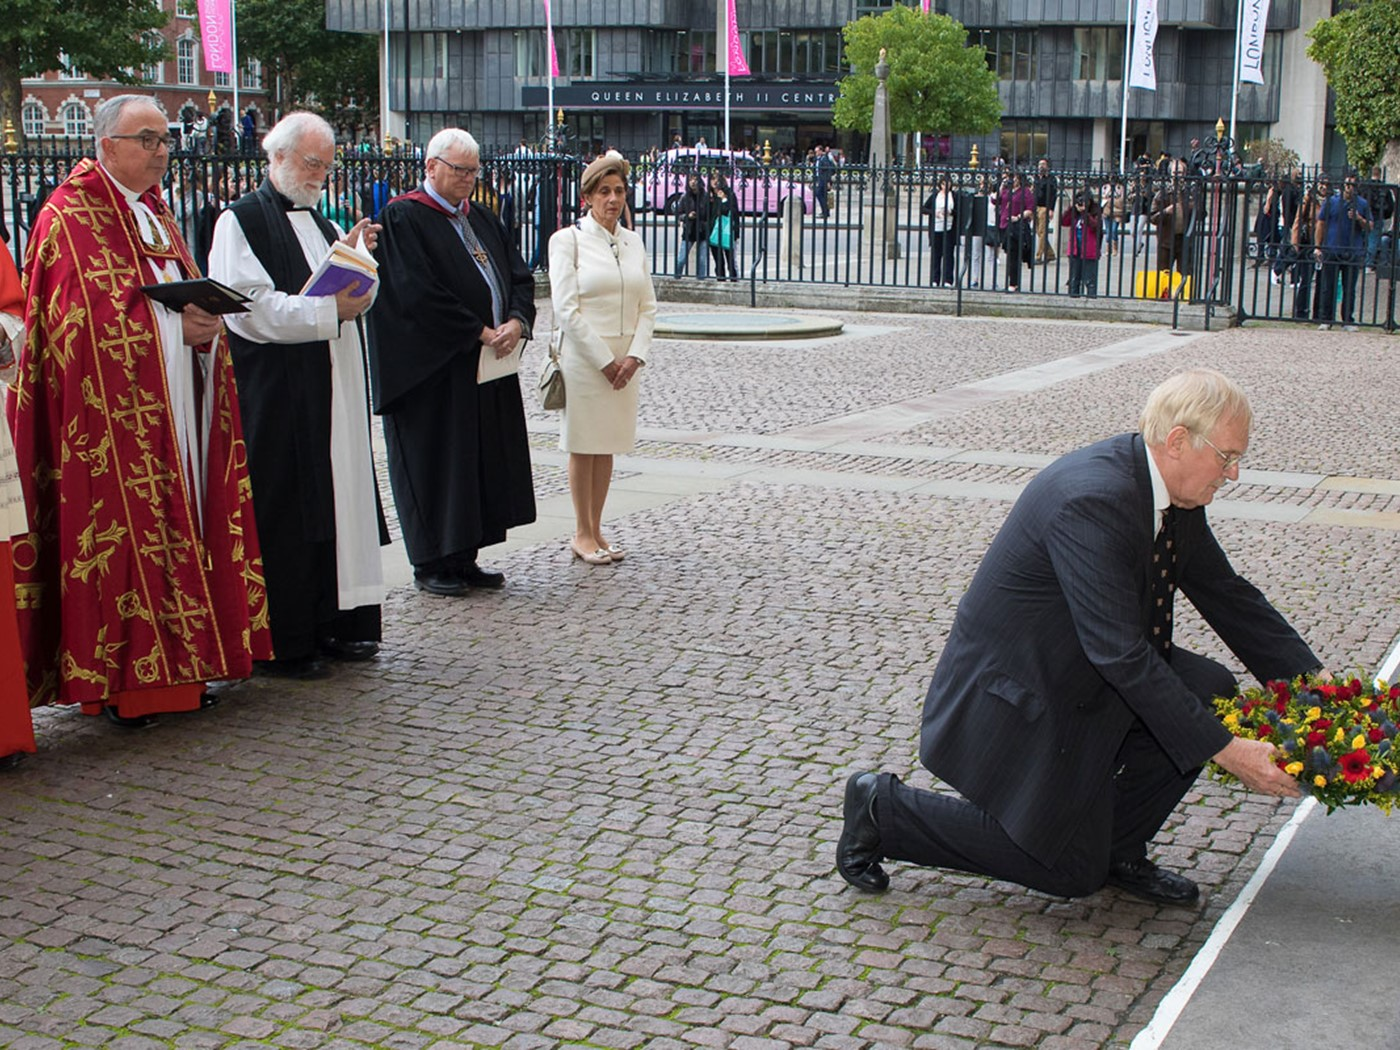 Julian Filochowski, Chair, Archbishop Romero Trust, lays a wreath beneath the statue of Blessed Oscar Romero's on the West front of the Abbey Church